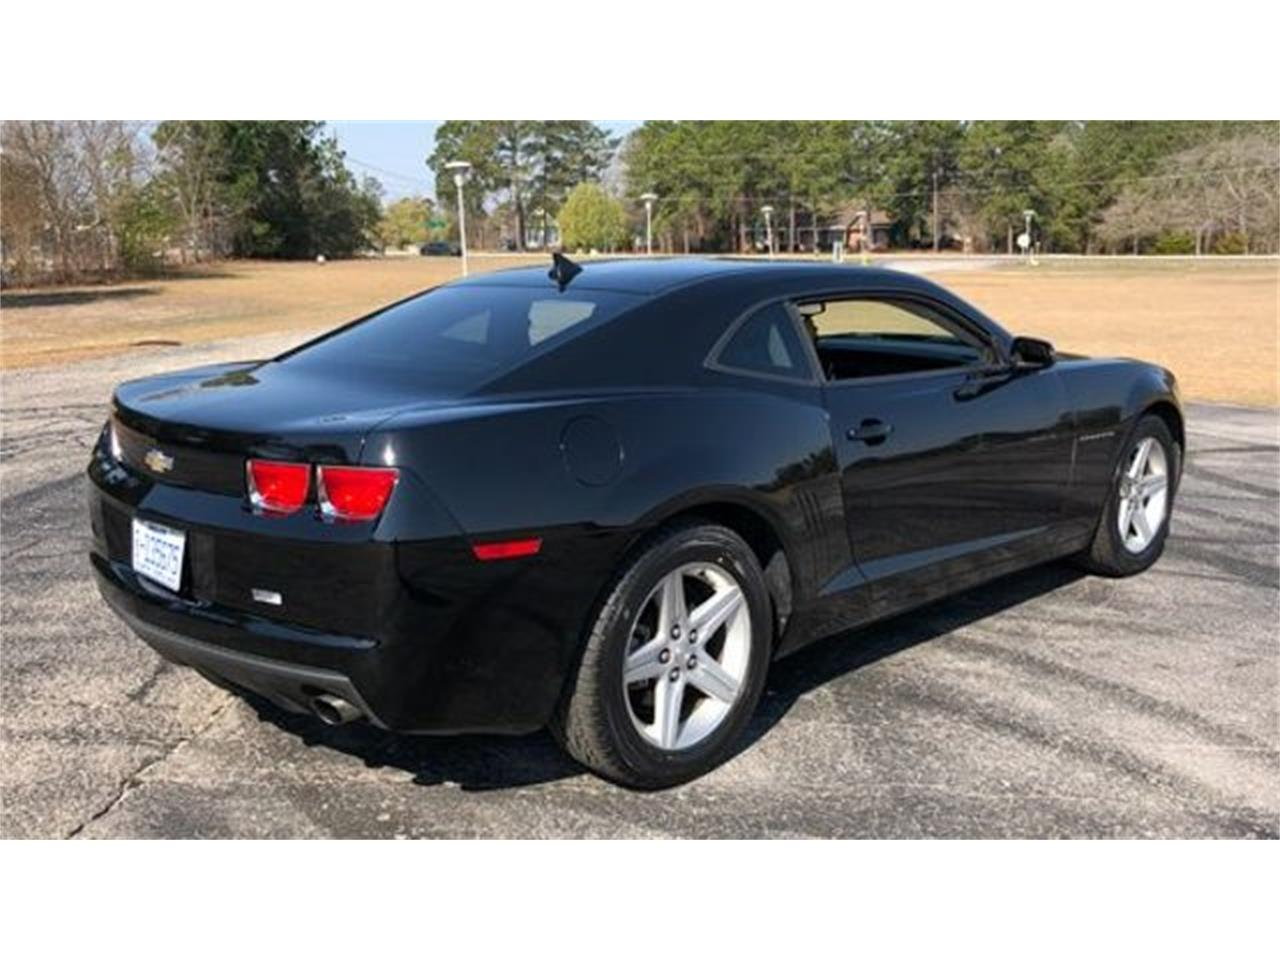 Large Picture of '11 Chevrolet Camaro located in Hope Mills North Carolina - $11,995.00 - MZJO